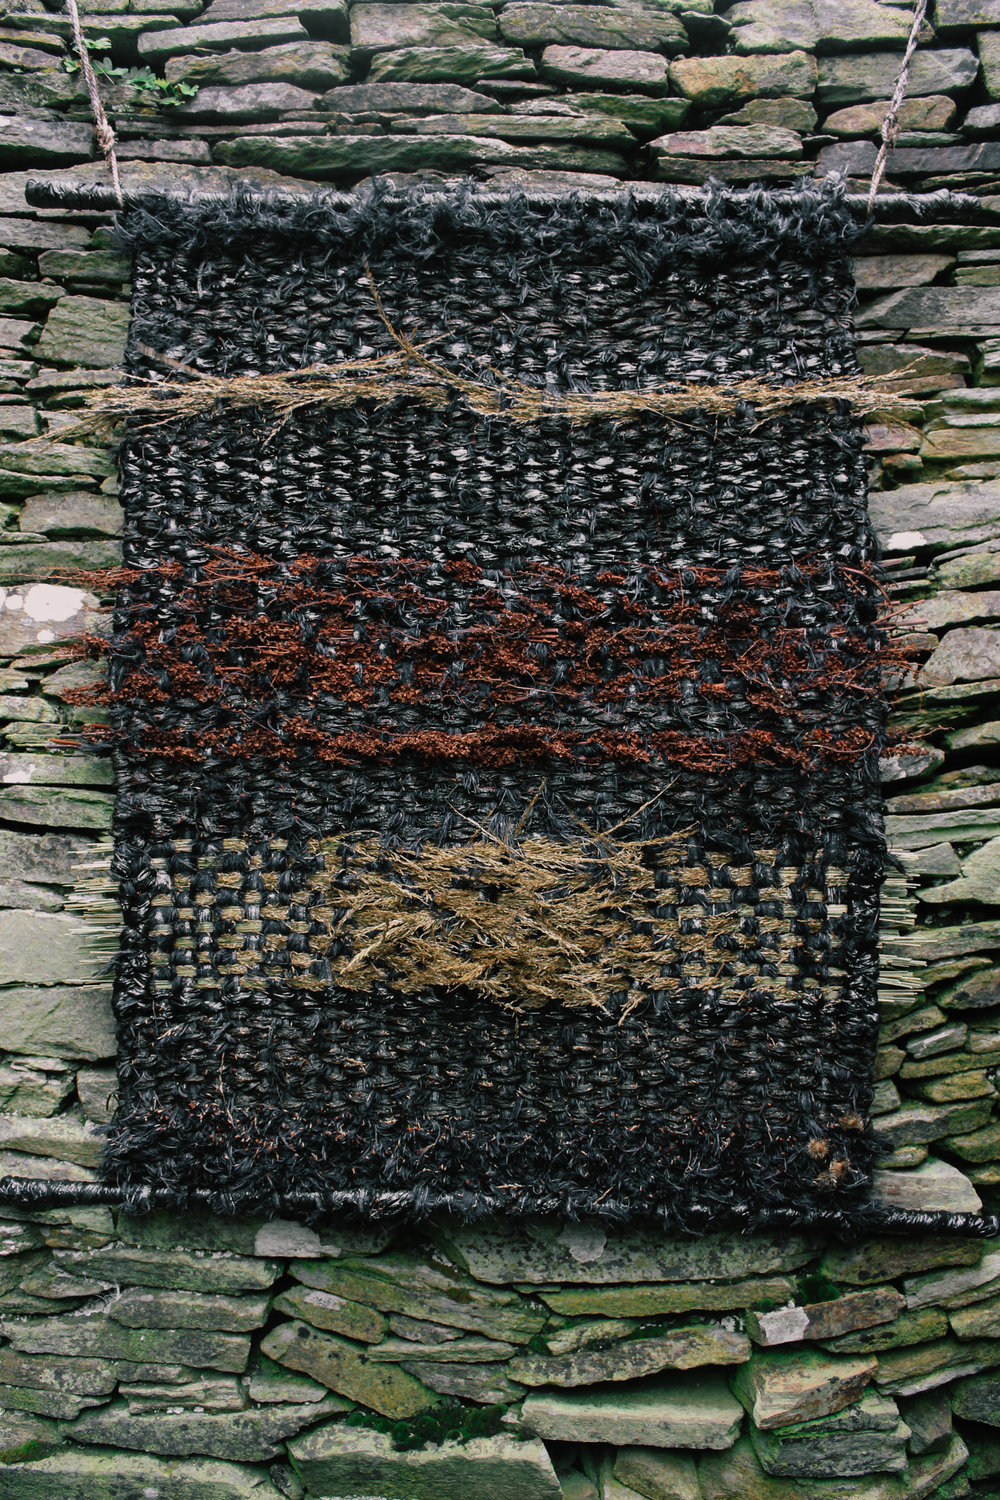 FÍ FIÁIN A woven tapestry using natural and found material hanging inside the copper miners lodge. Materials include seaweed, grasses and Silo wrap.